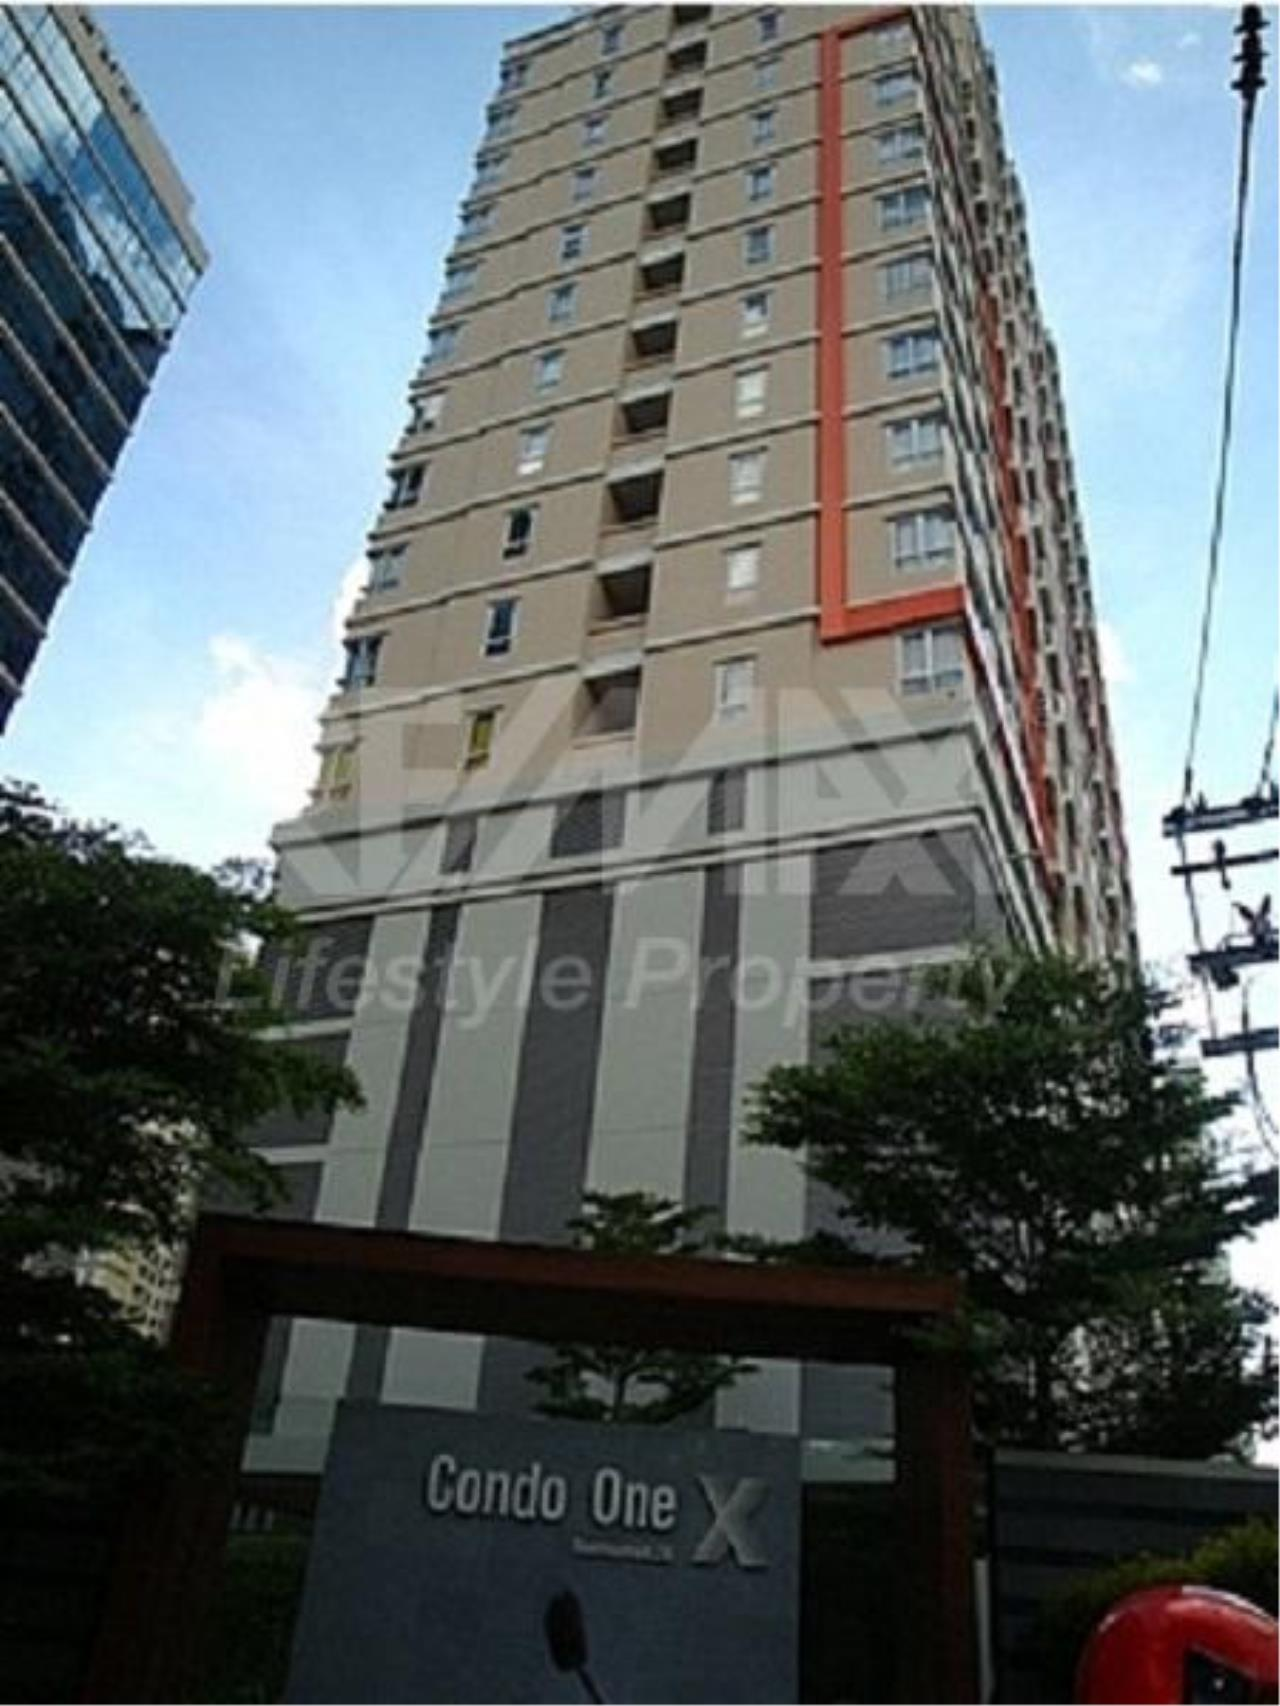 RE/MAX LifeStyle Property Agency's Condo One X Sukhumvit 26 1